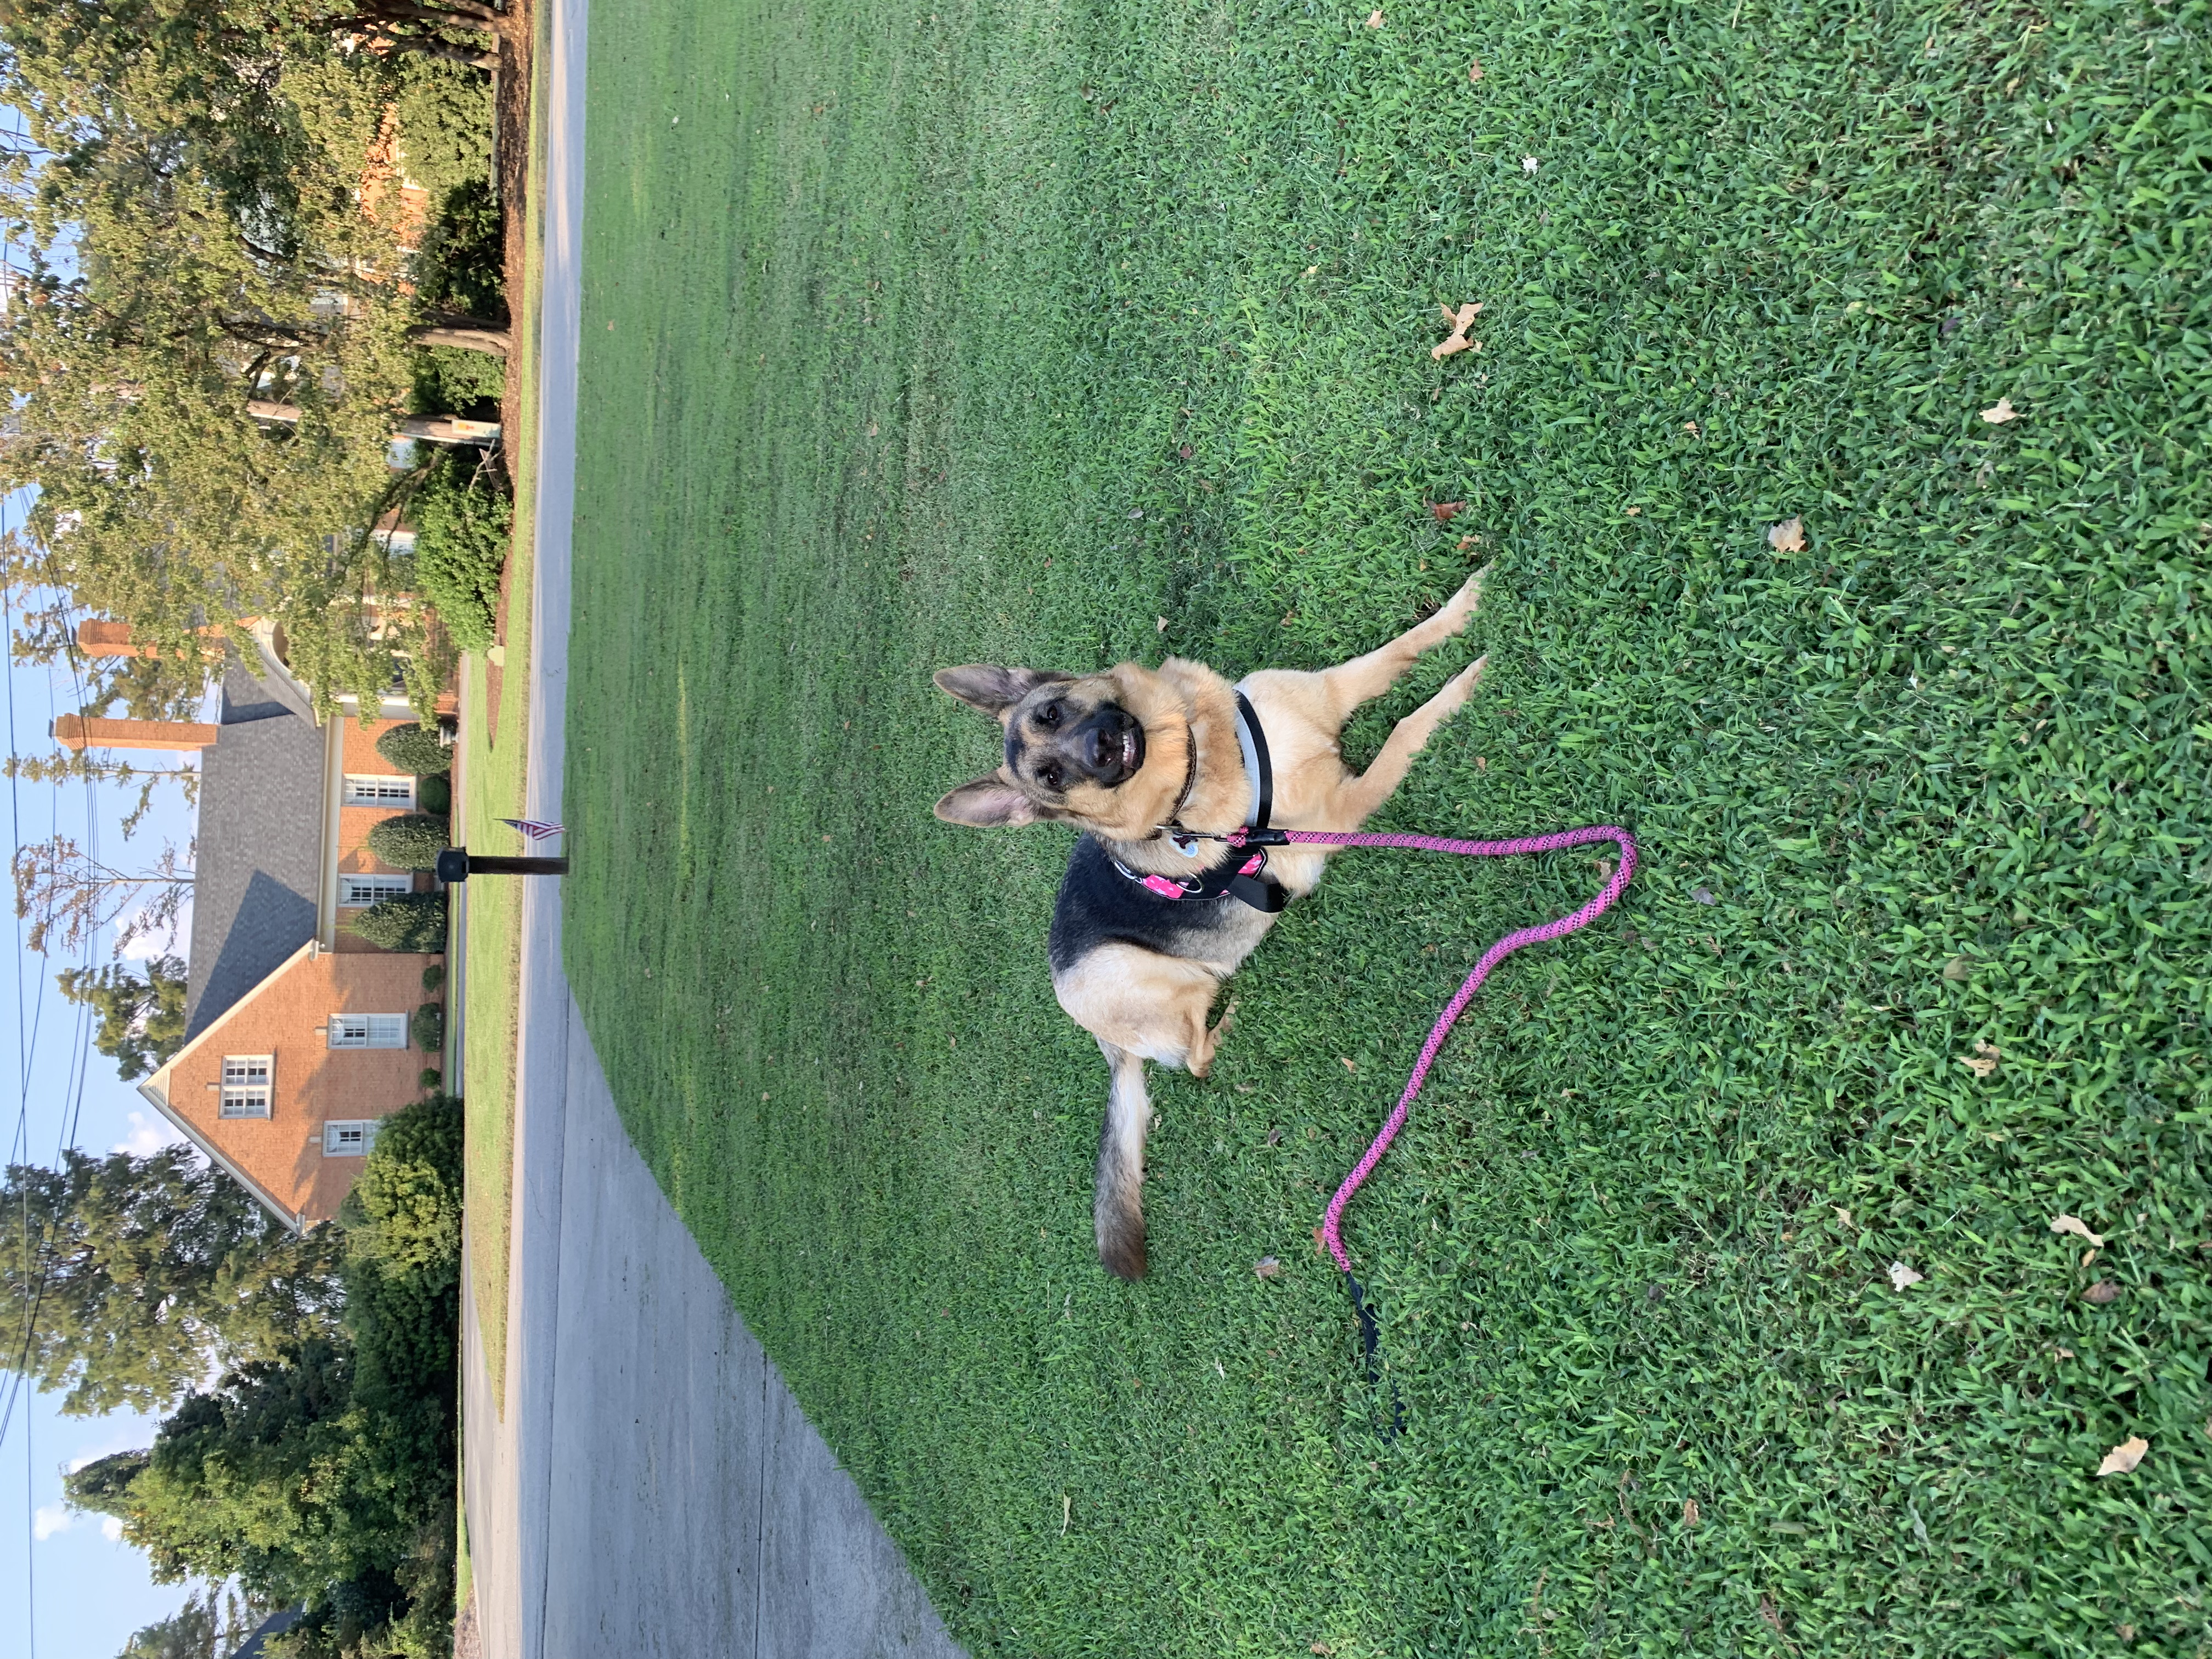 Fritzi is all smiles during a front yard training session